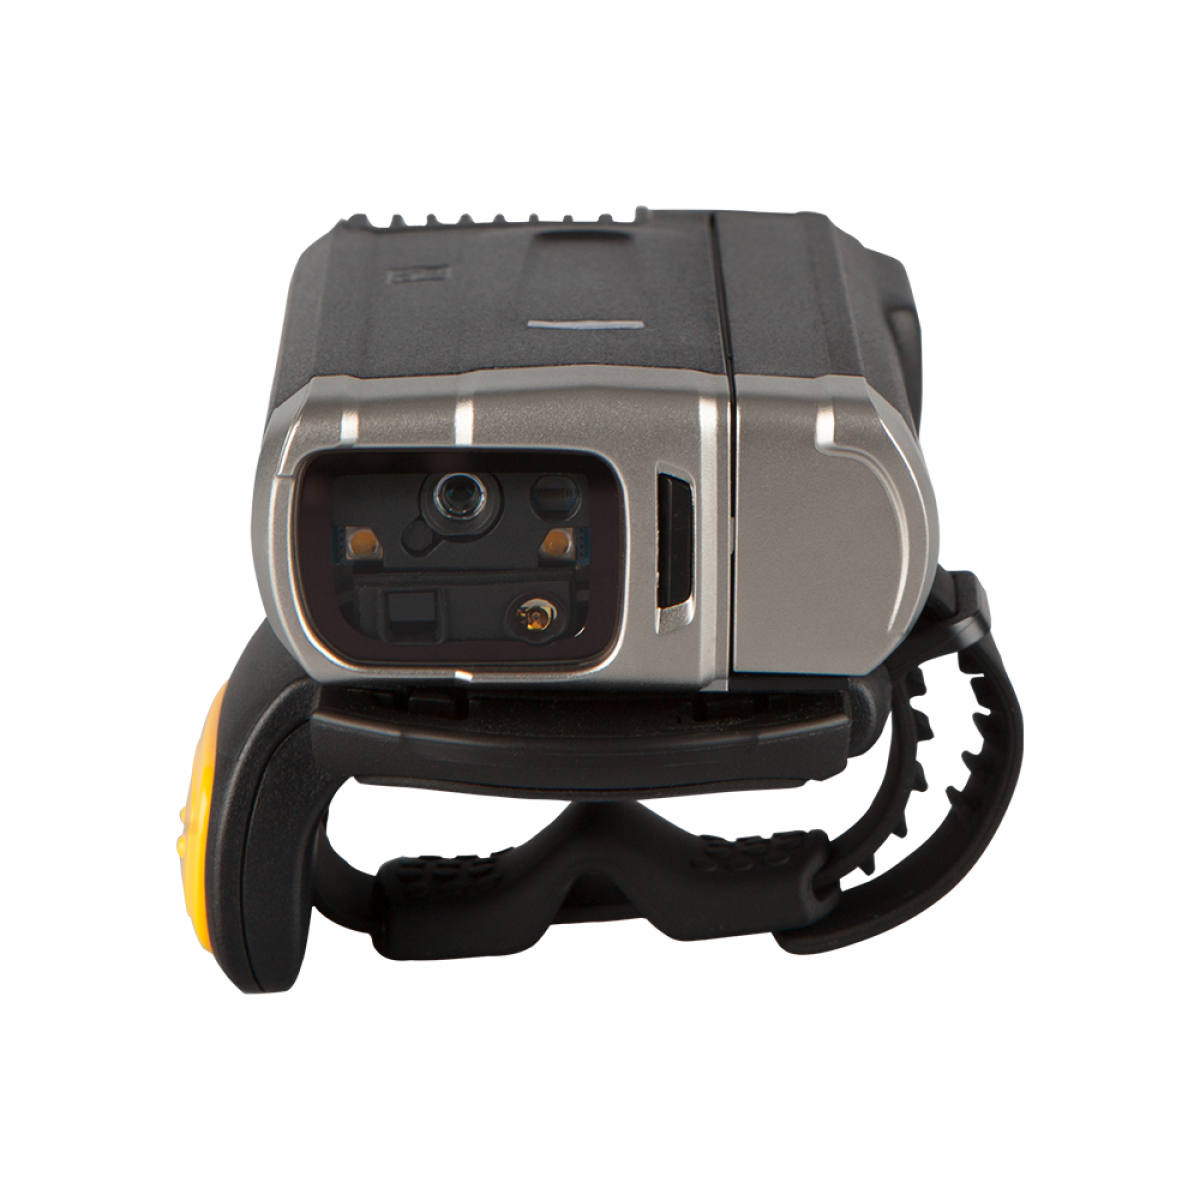 Zebra RS6000 ring scanner with ambidextrous trigger